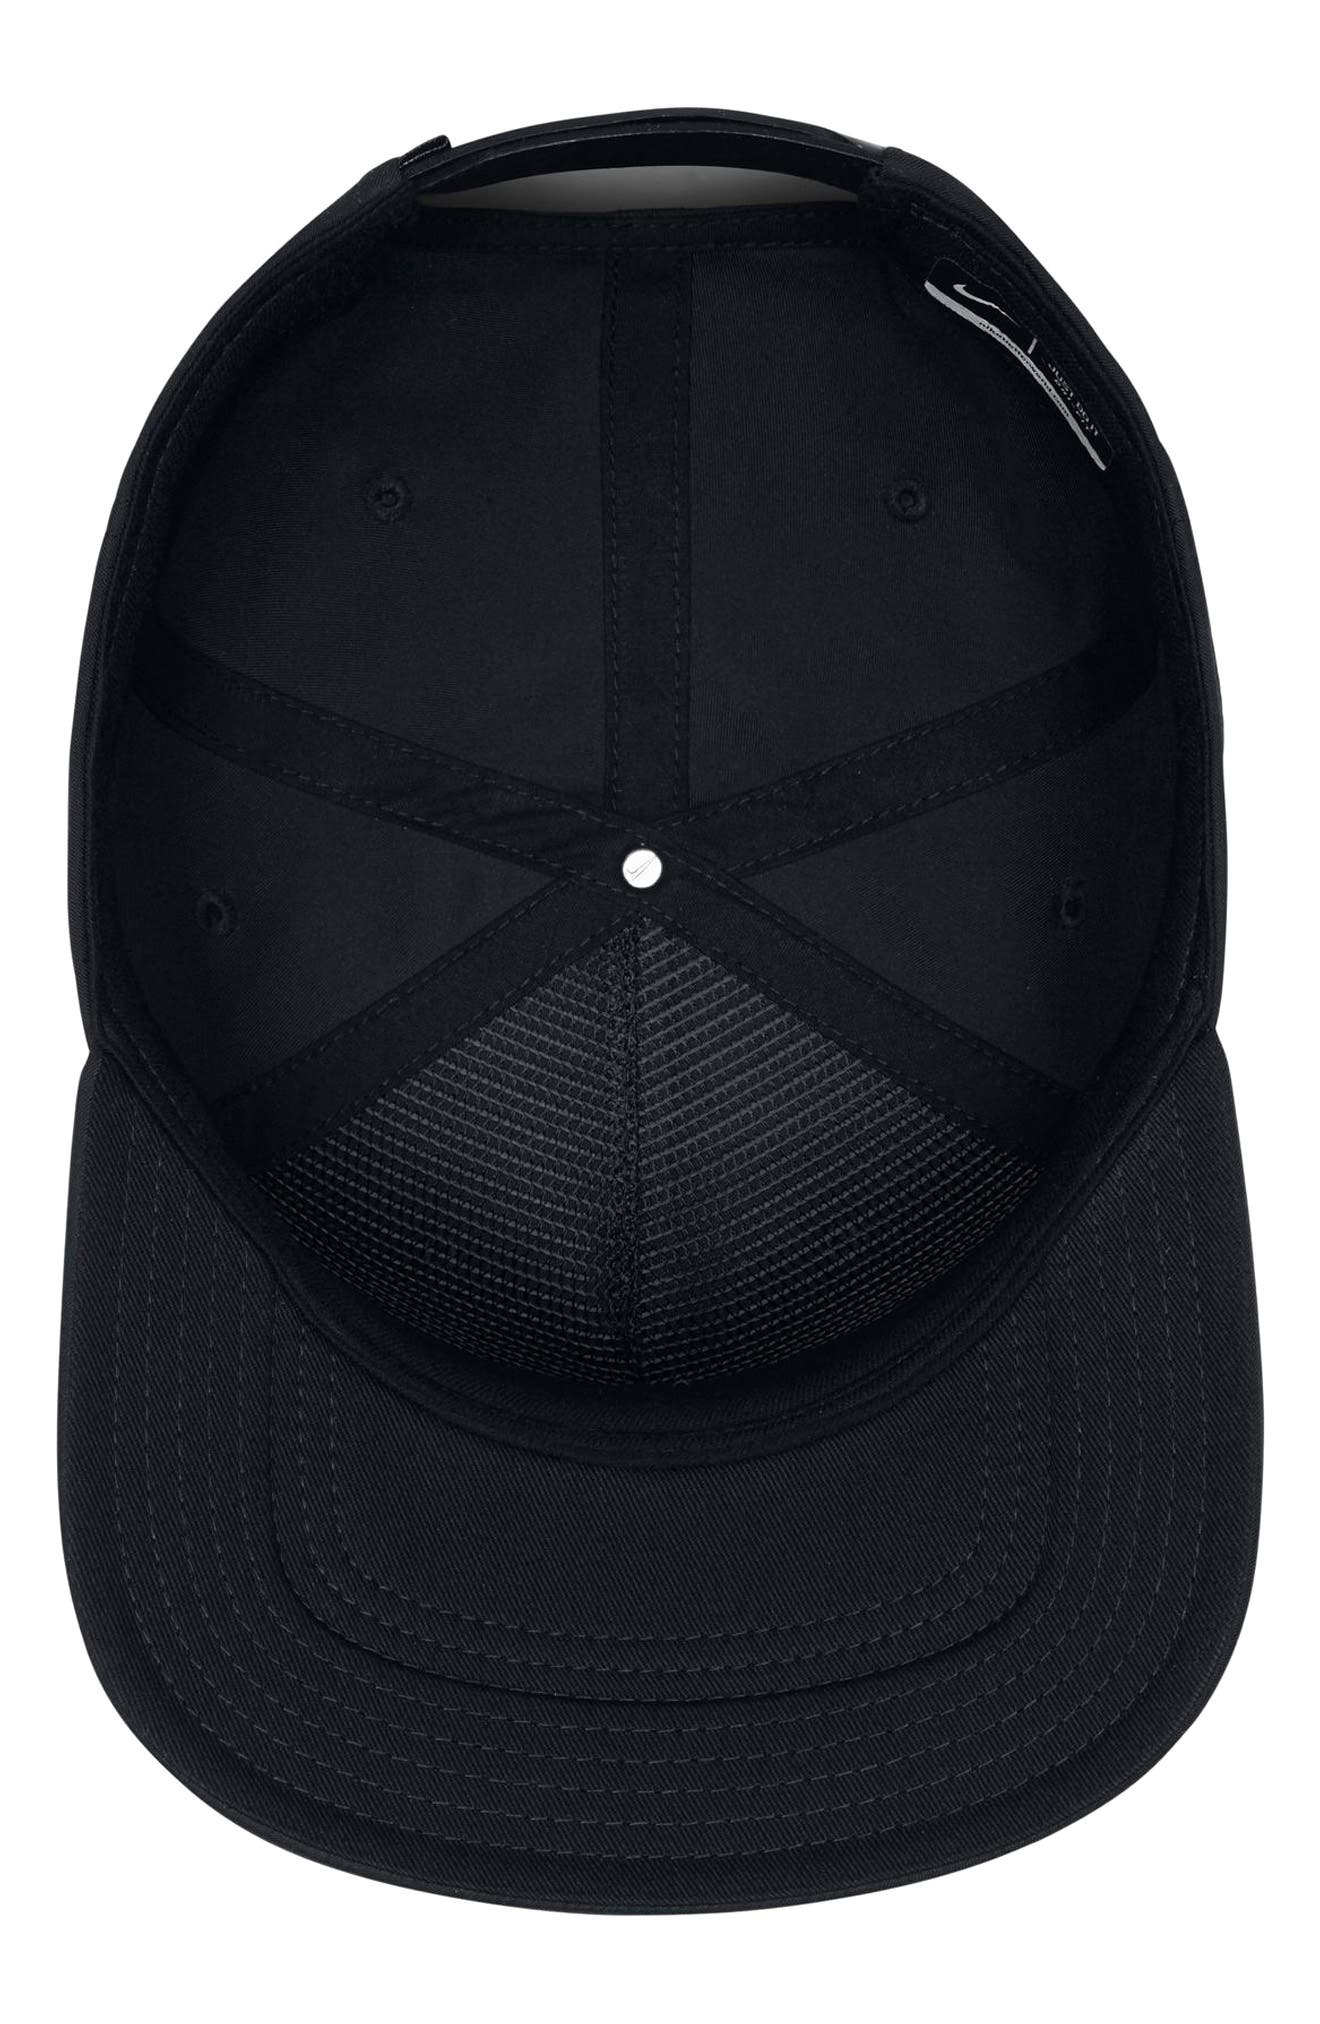 NikeLab Essentials Pro Adjustable Cap,                             Alternate thumbnail 9, color,                             010